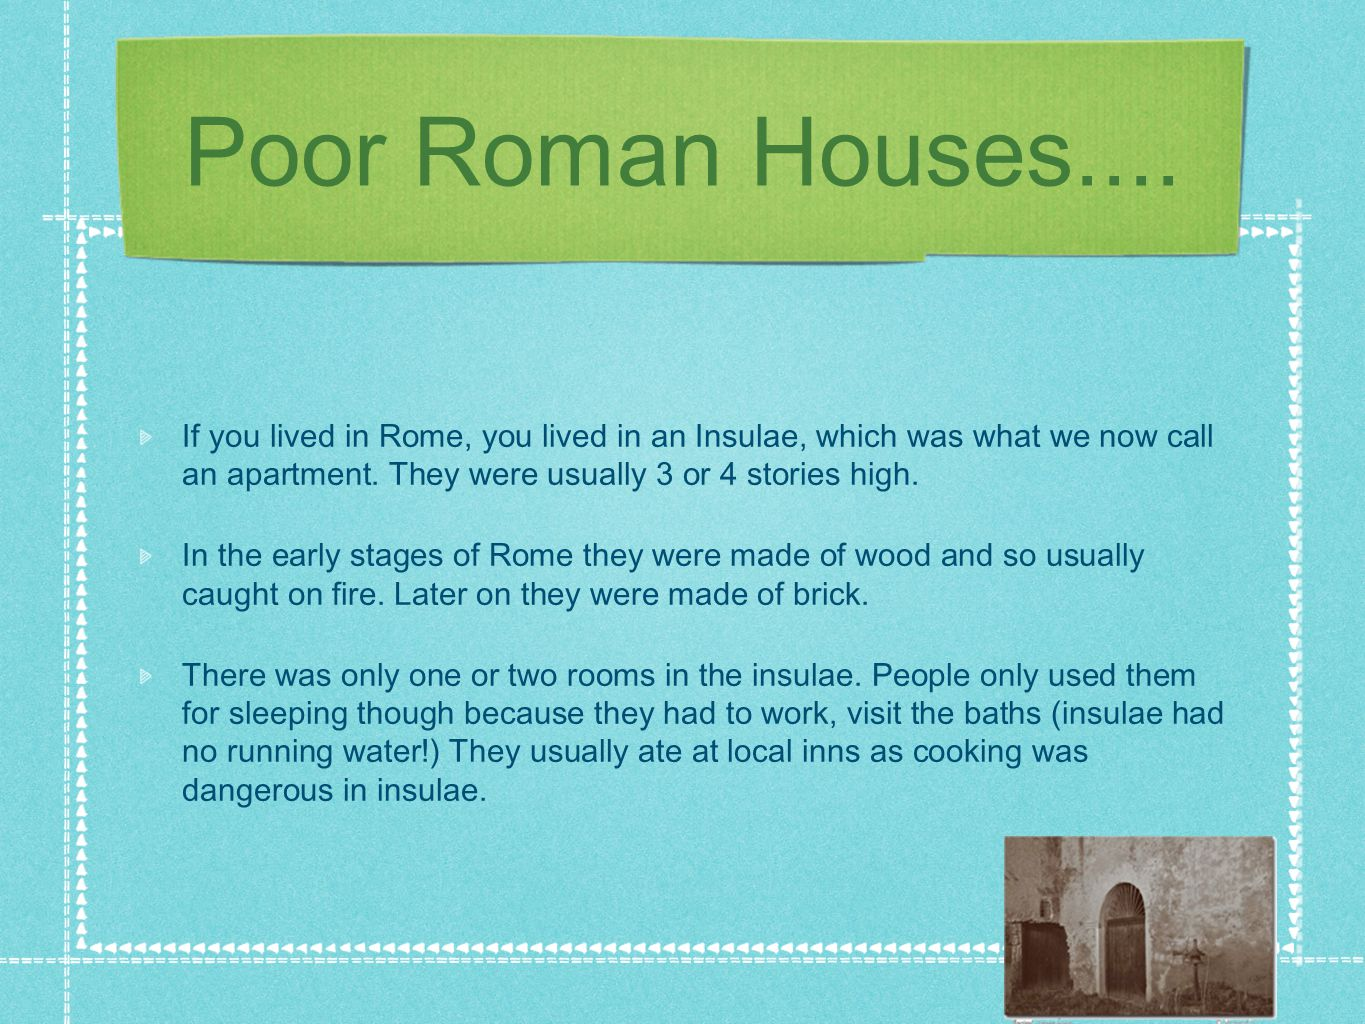 Poor Roman Houses.... If you lived in Rome, you lived in an Insulae, which was what we now call an apartment. They were usually 3 or 4 stories high. I